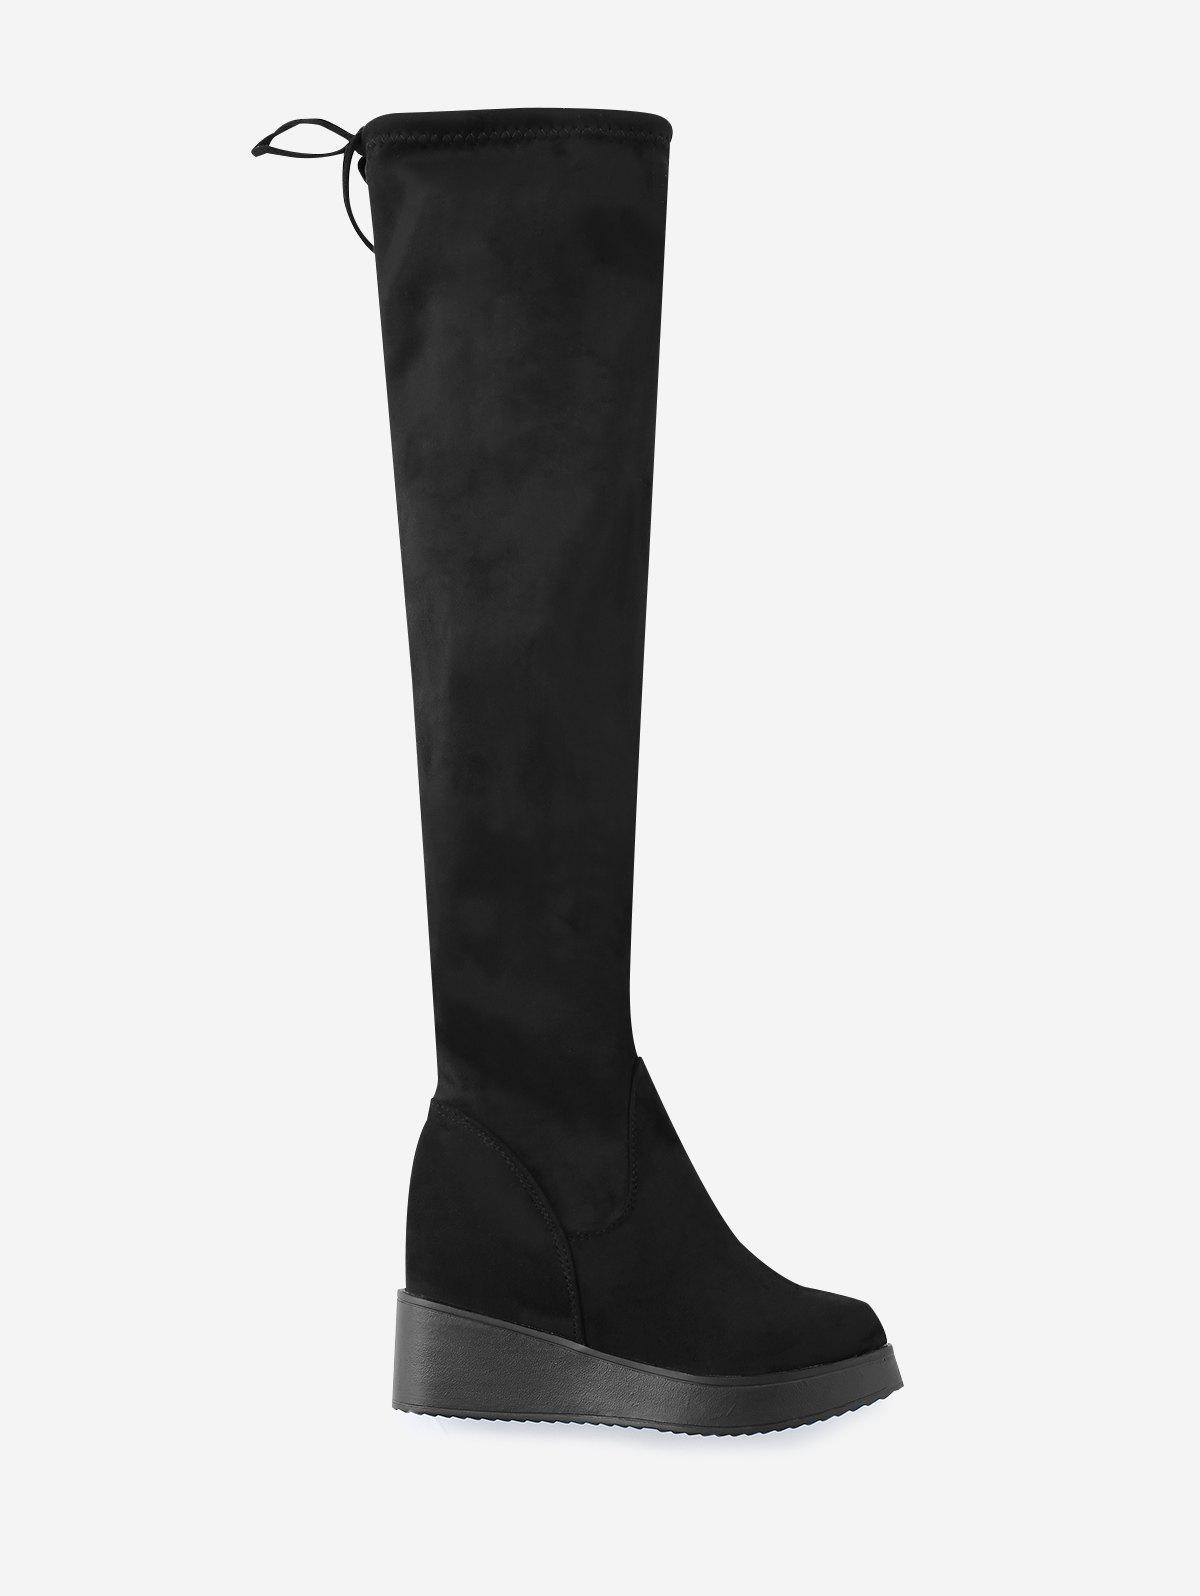 Buy Wedge Heel Tie Back Over The Knee Boots